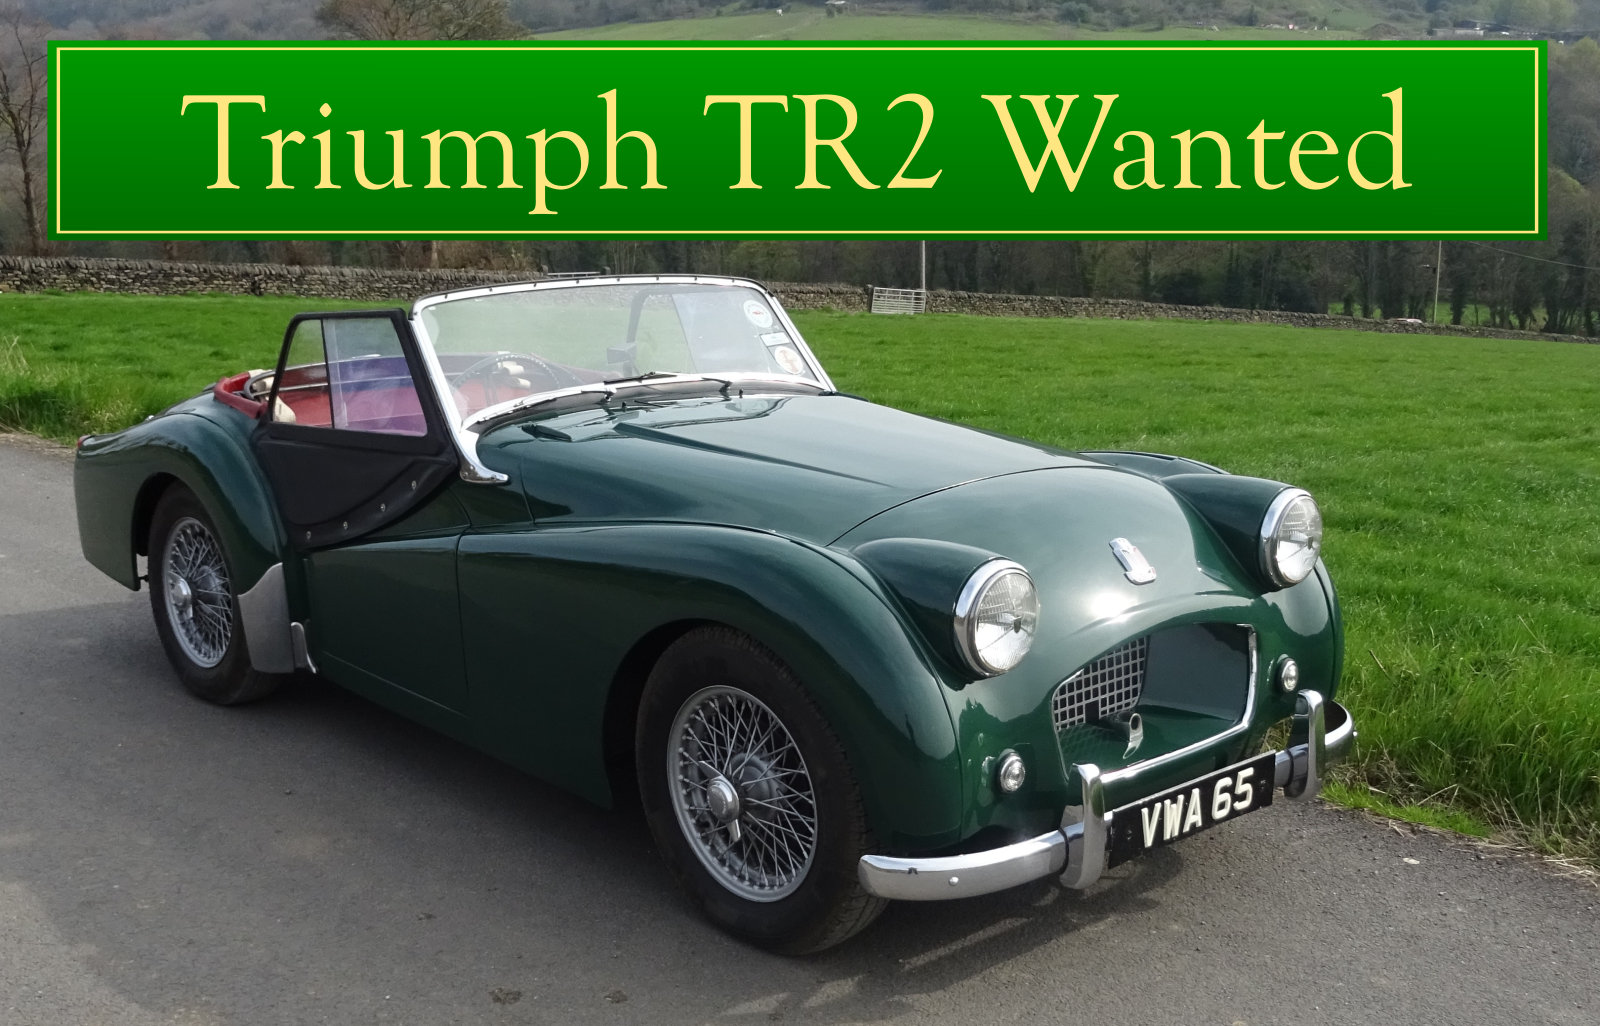 1956 TRIUMPH TR3 WANTED, CLASSIC CARS WANTED, QUICK PAYMENT Wanted (picture 5 of 6)